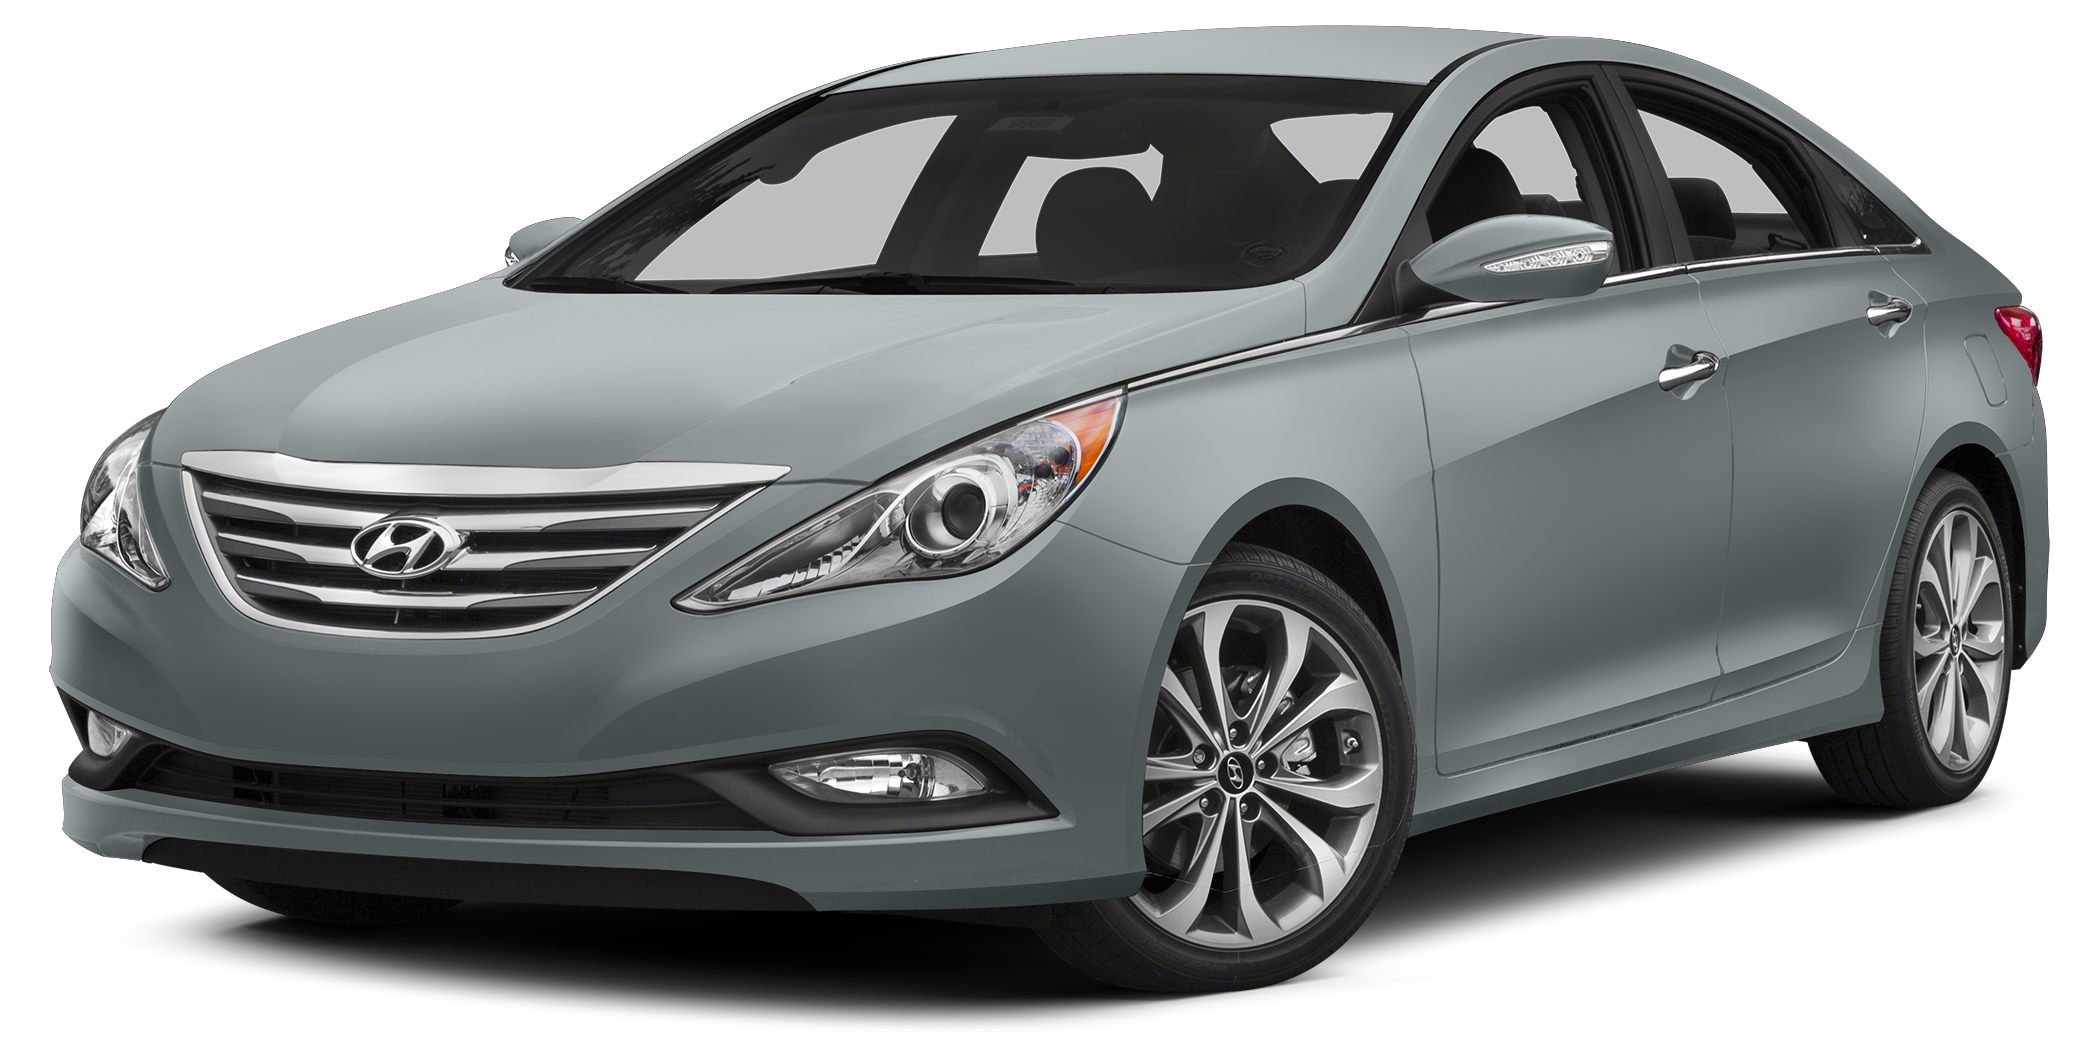 2014 Hyundai Sonata GLS WE OFFER FREE LIFETIME INSPECTION Miles 17528Color Iridescent Silver Bl